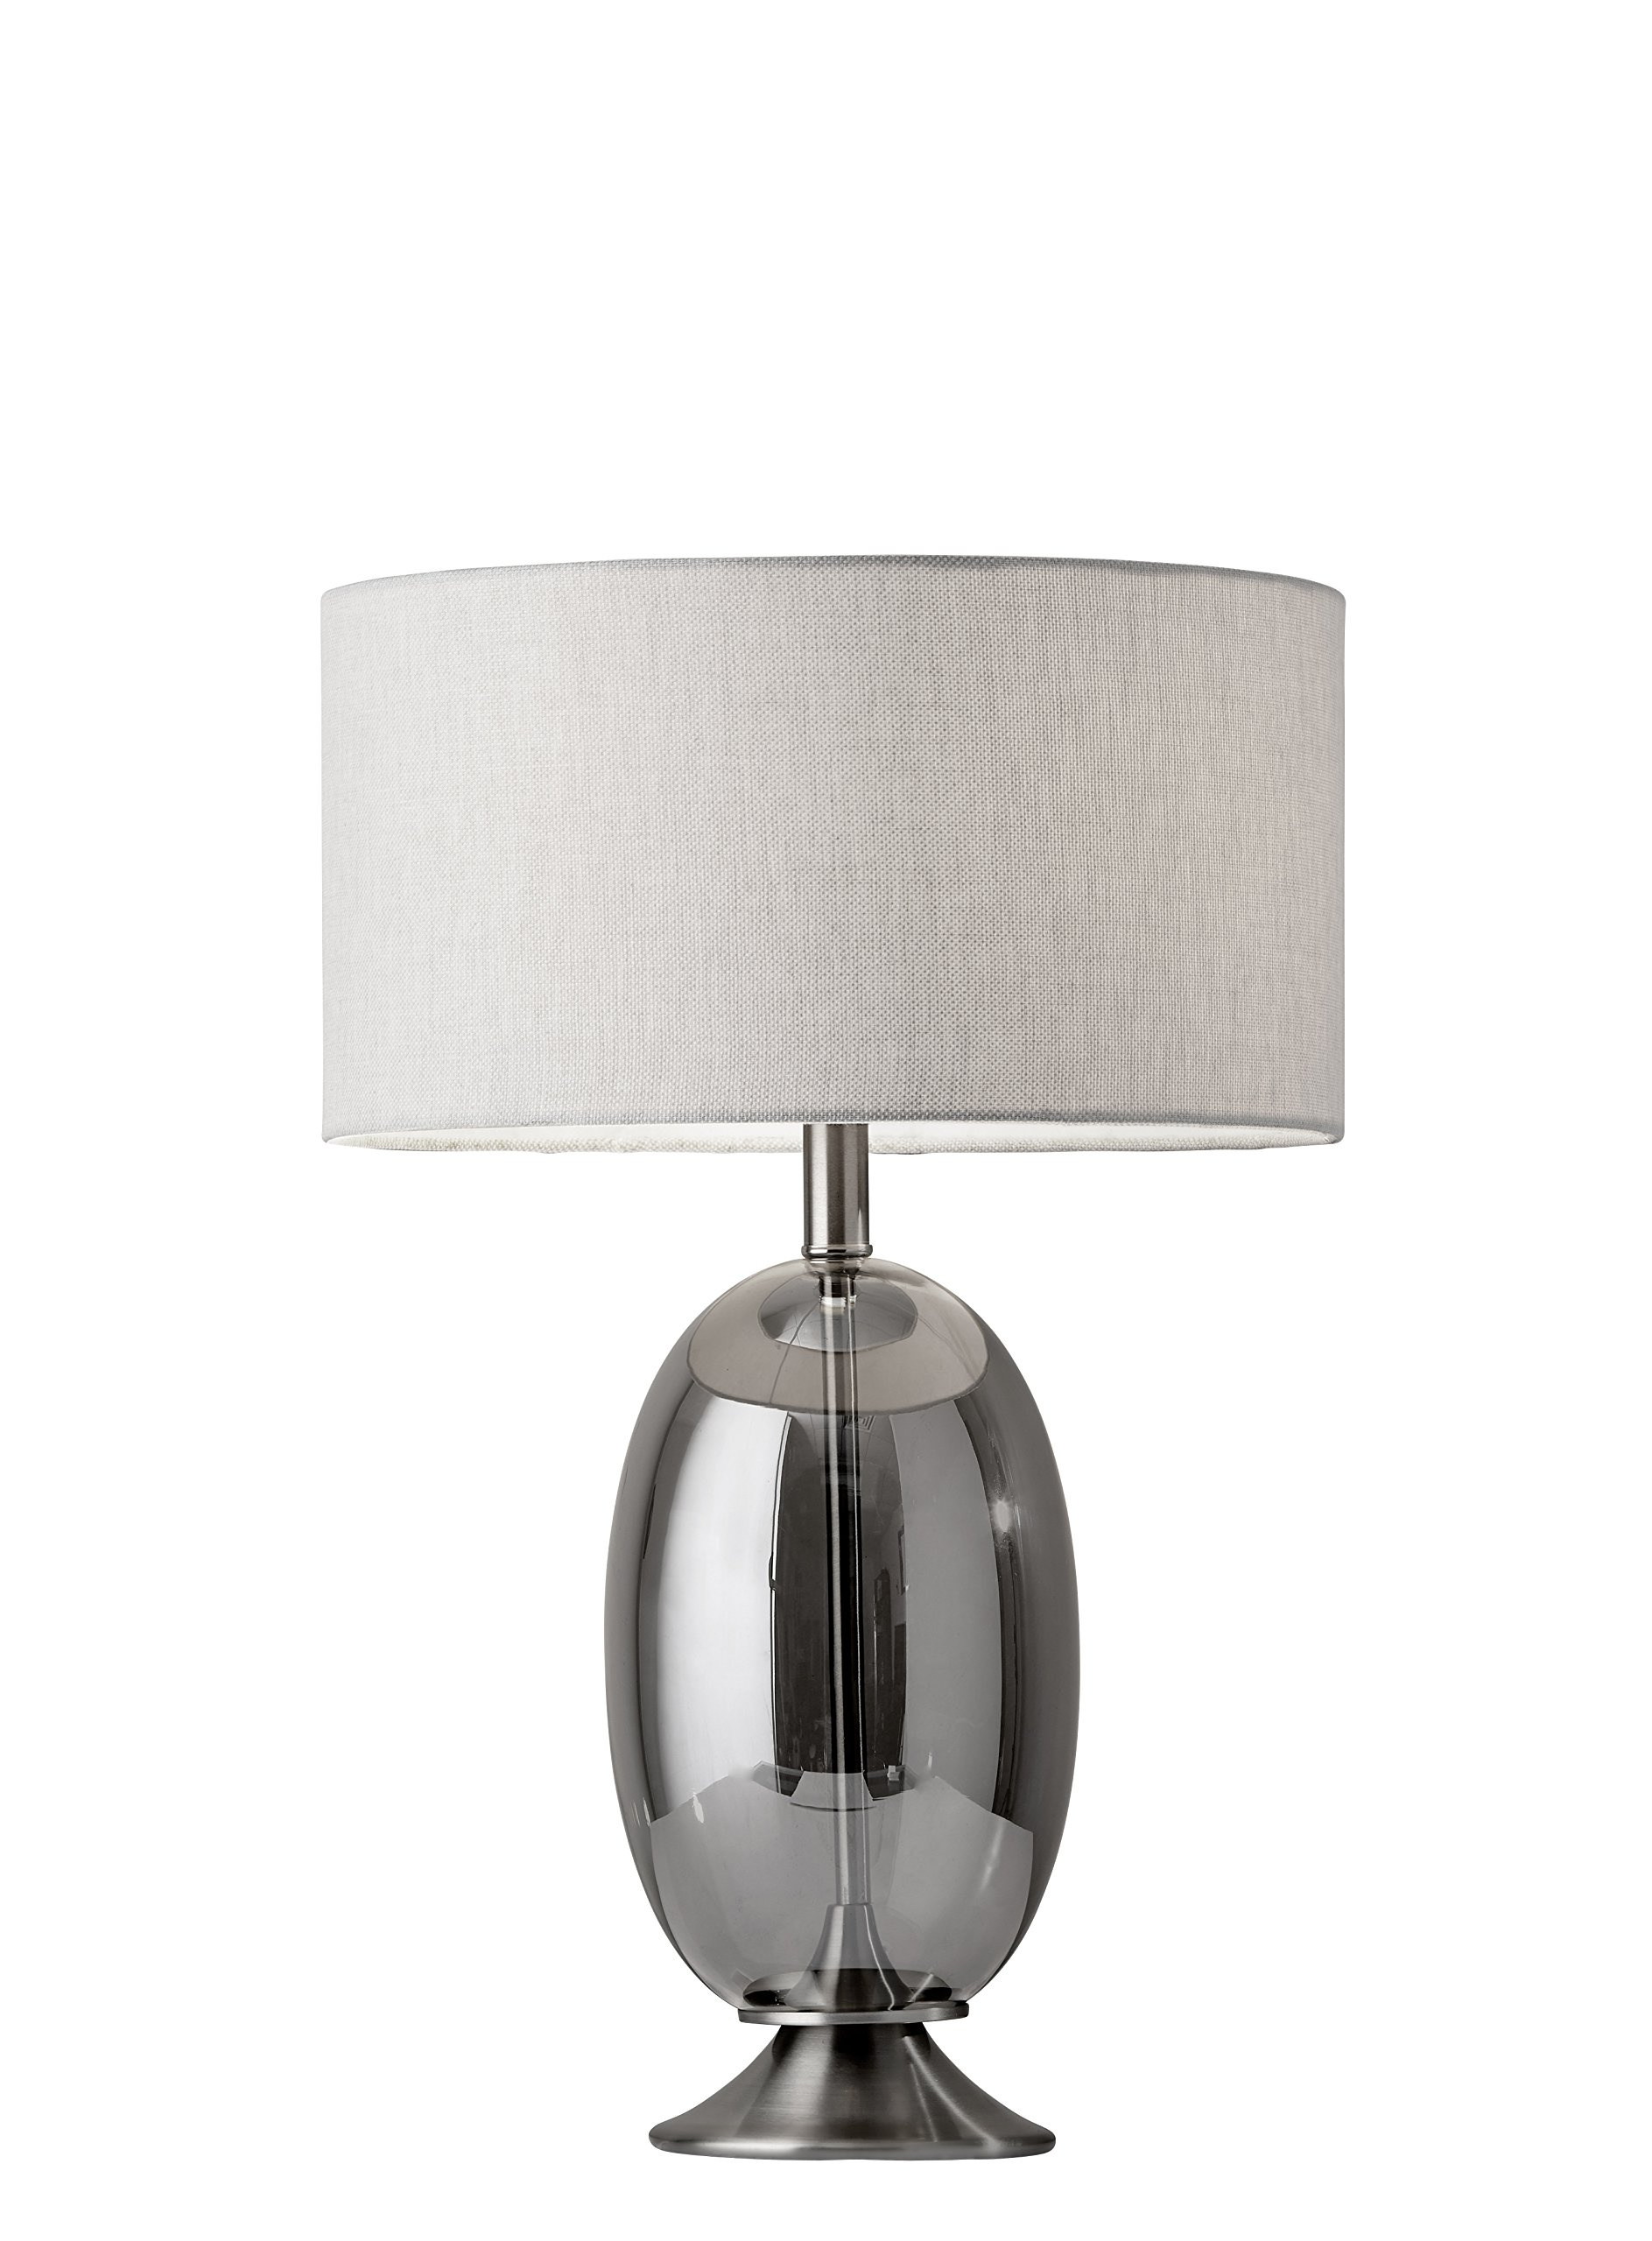 Adesso 1540-22 Bailey Table Lamp